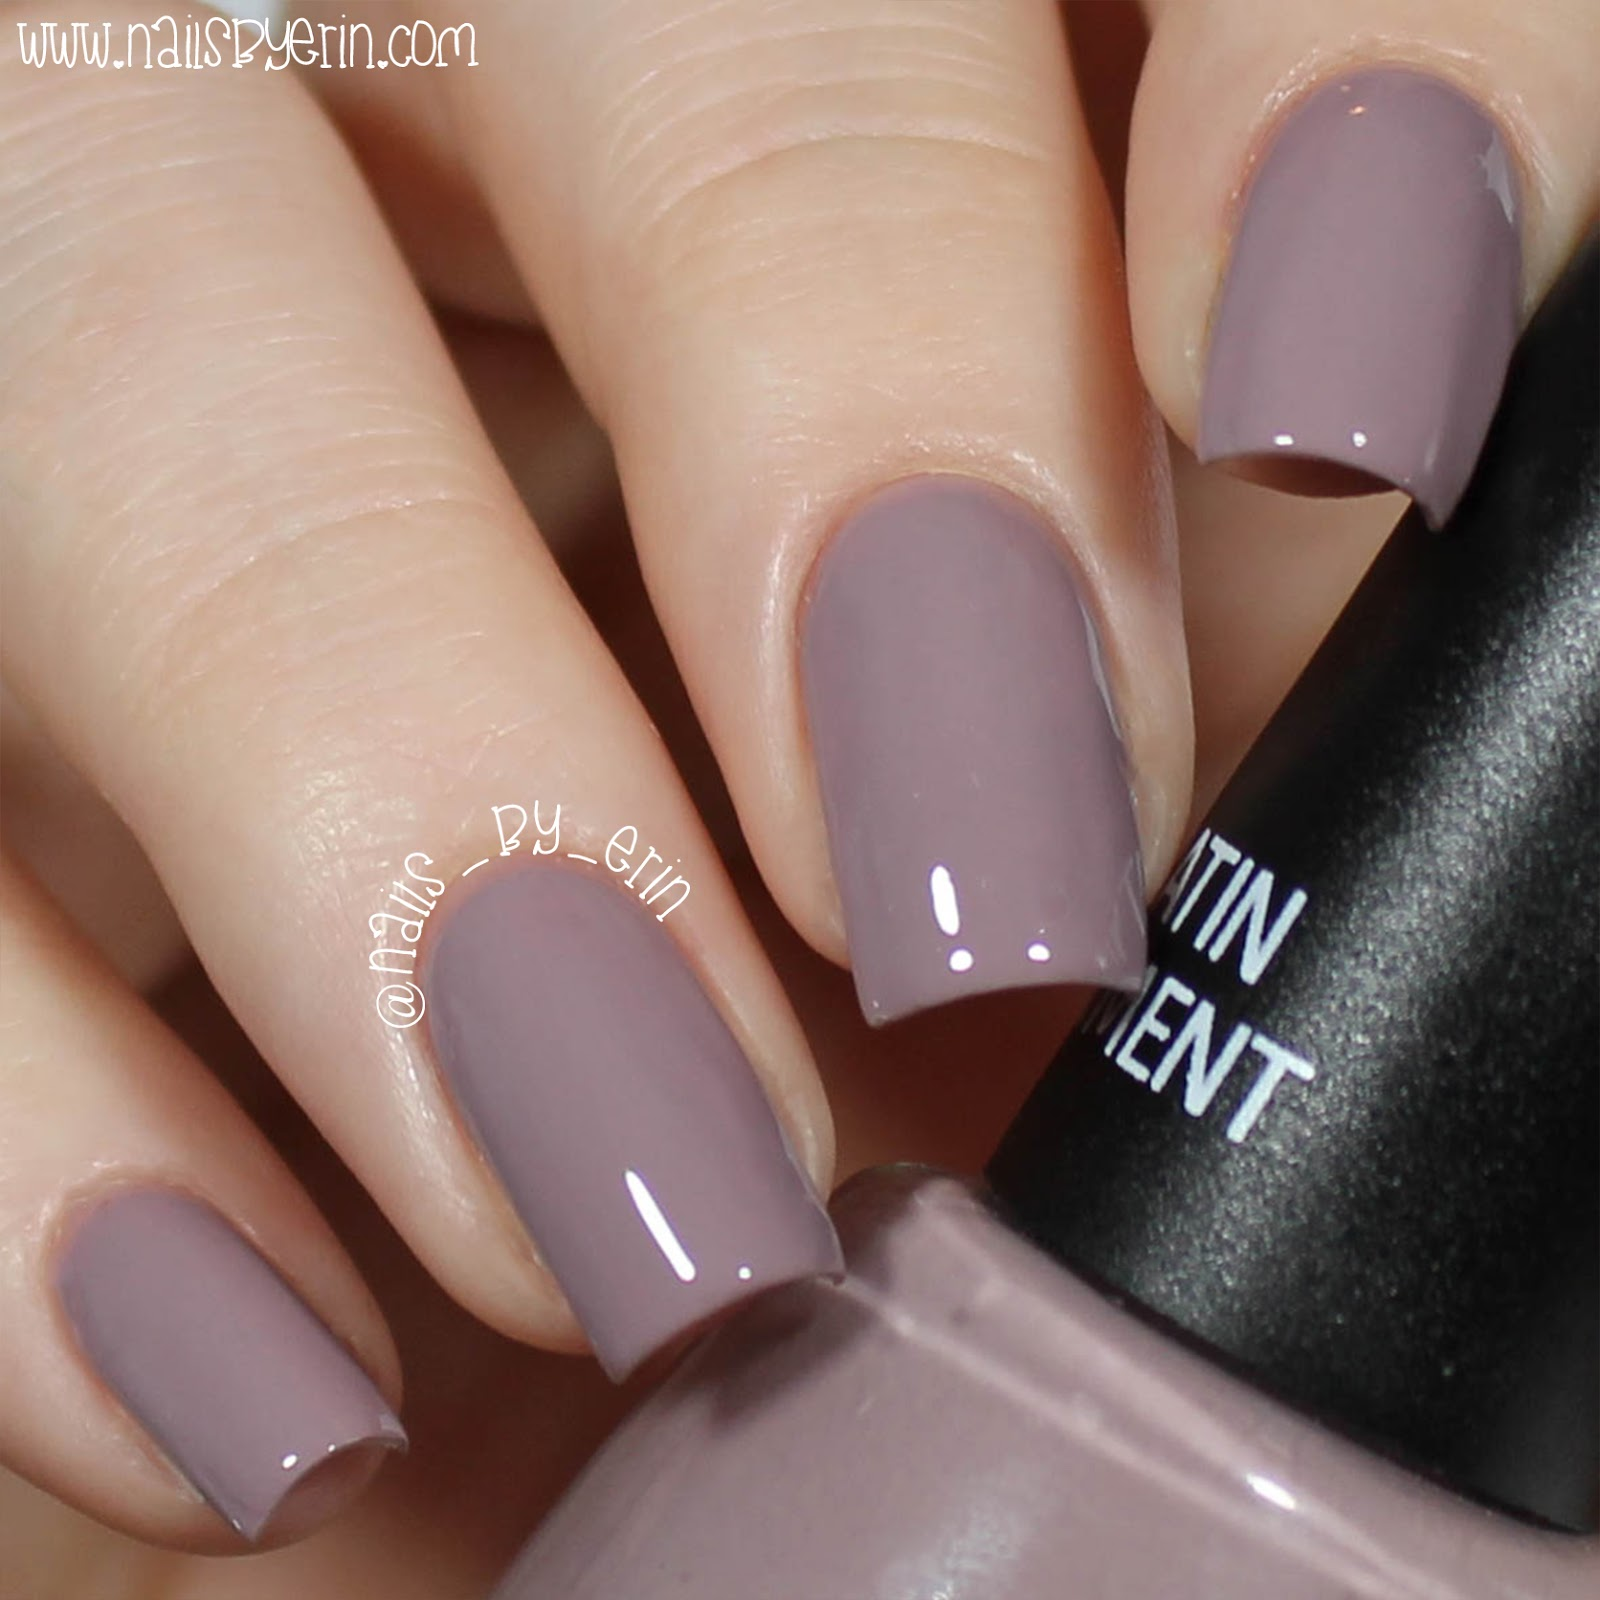 NailsByErin: Salon Perfect Naked Nutrients Collection